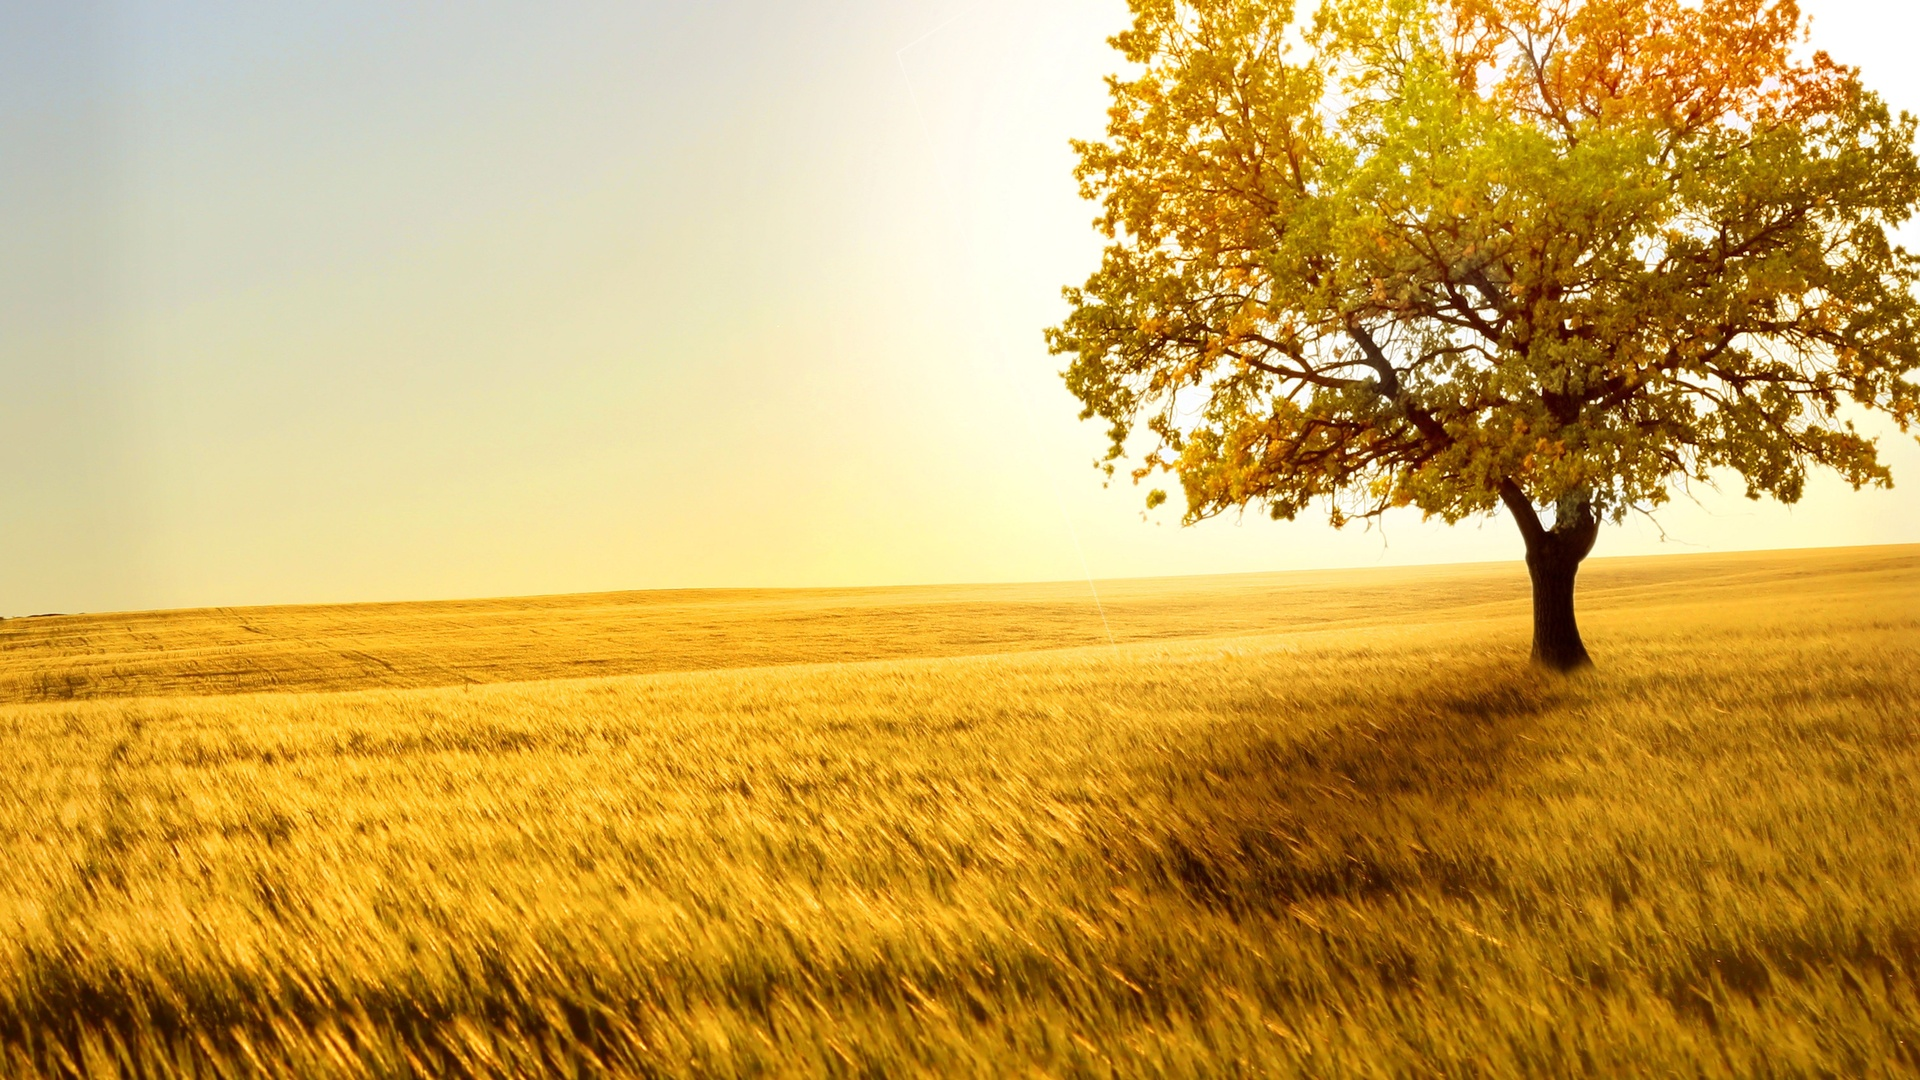 Wallpapers Download Yellow Field 562.12 Kb